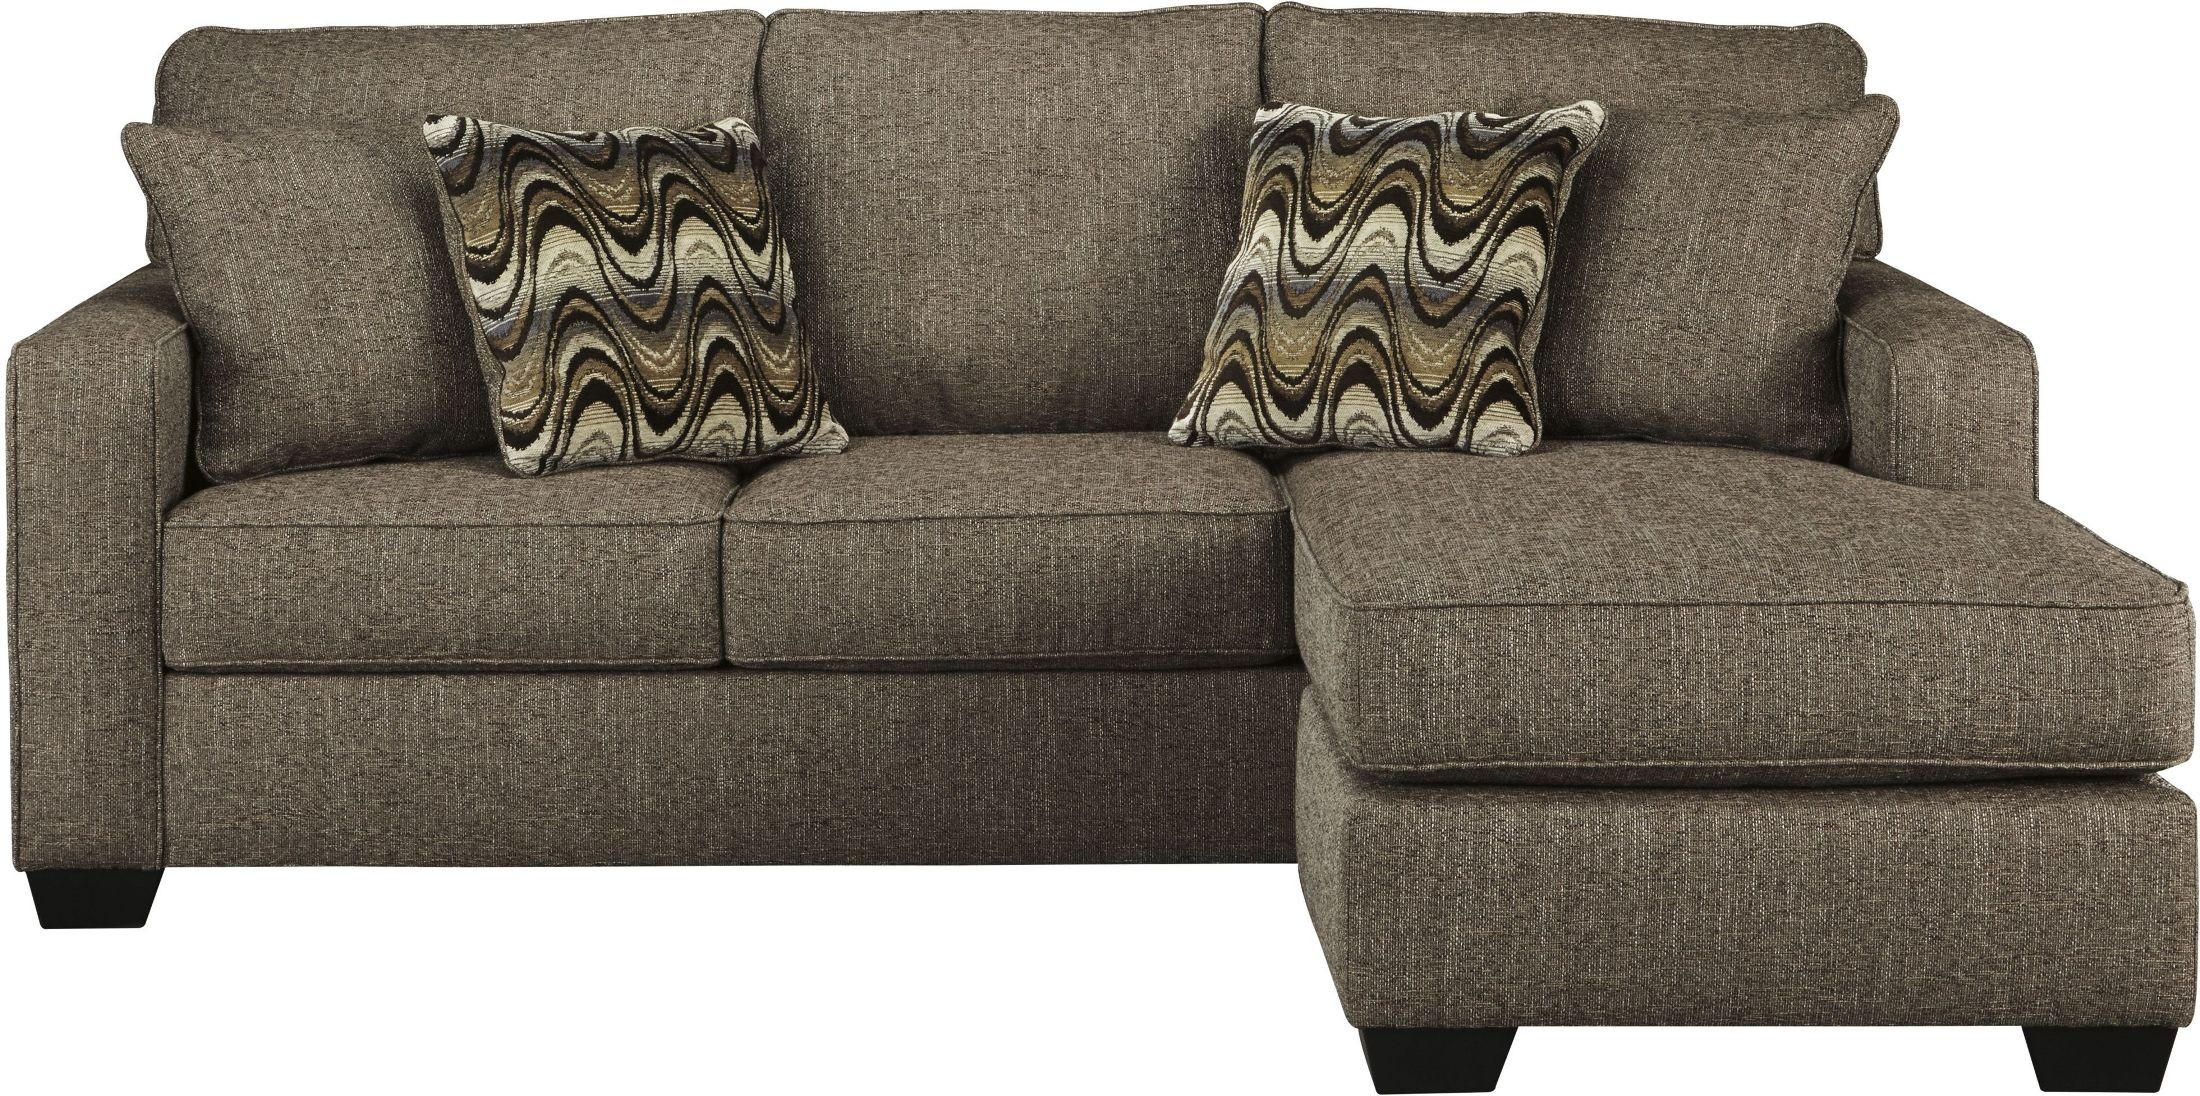 Chaise Sofa Living Room Set